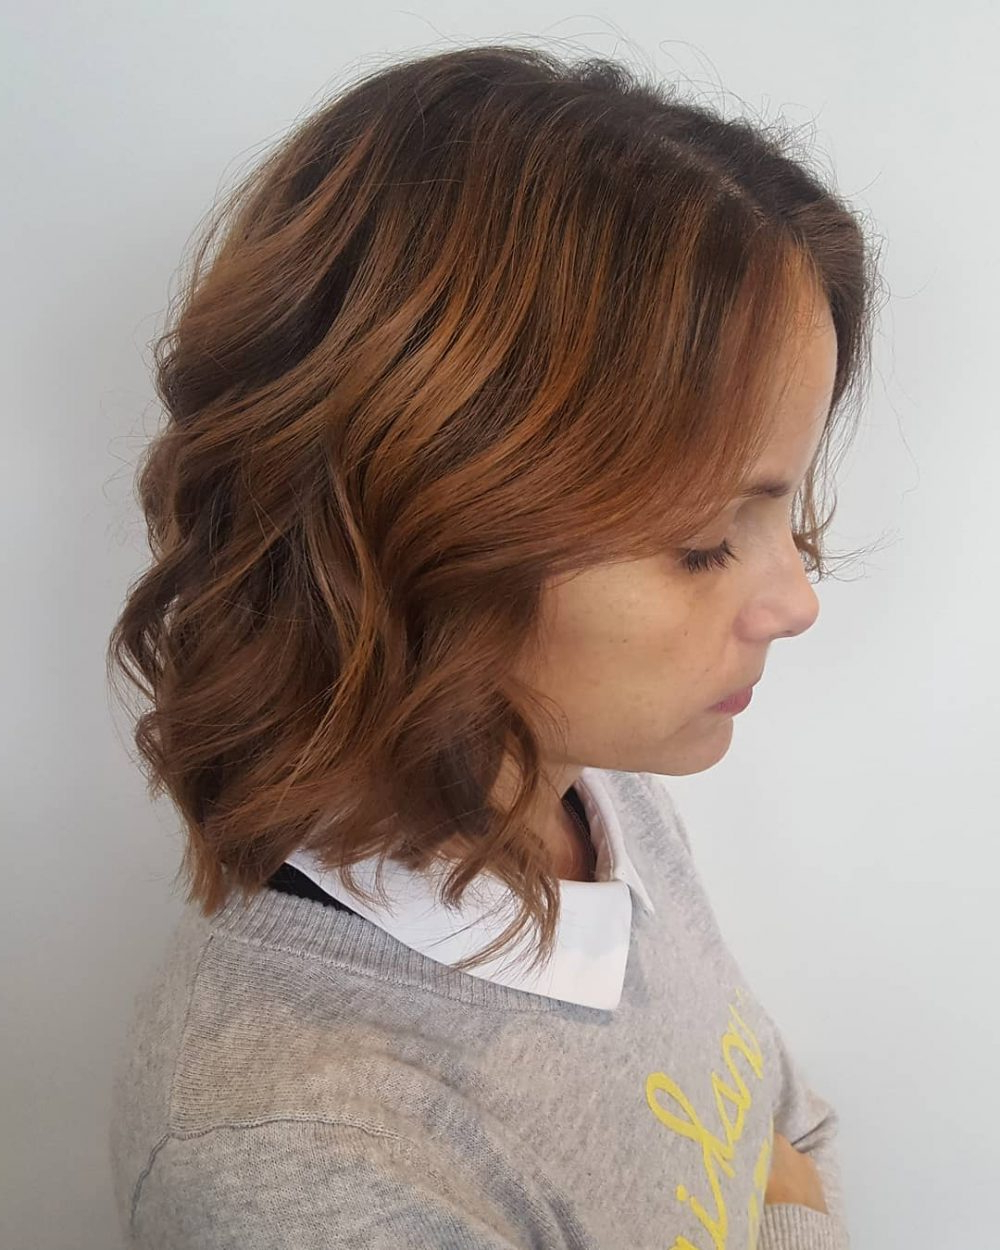 43 Greatest Wavy Bob Hairstyles – Short, Medium And Long In 2019 Within Short Bob Haircuts With Waves (View 14 of 20)